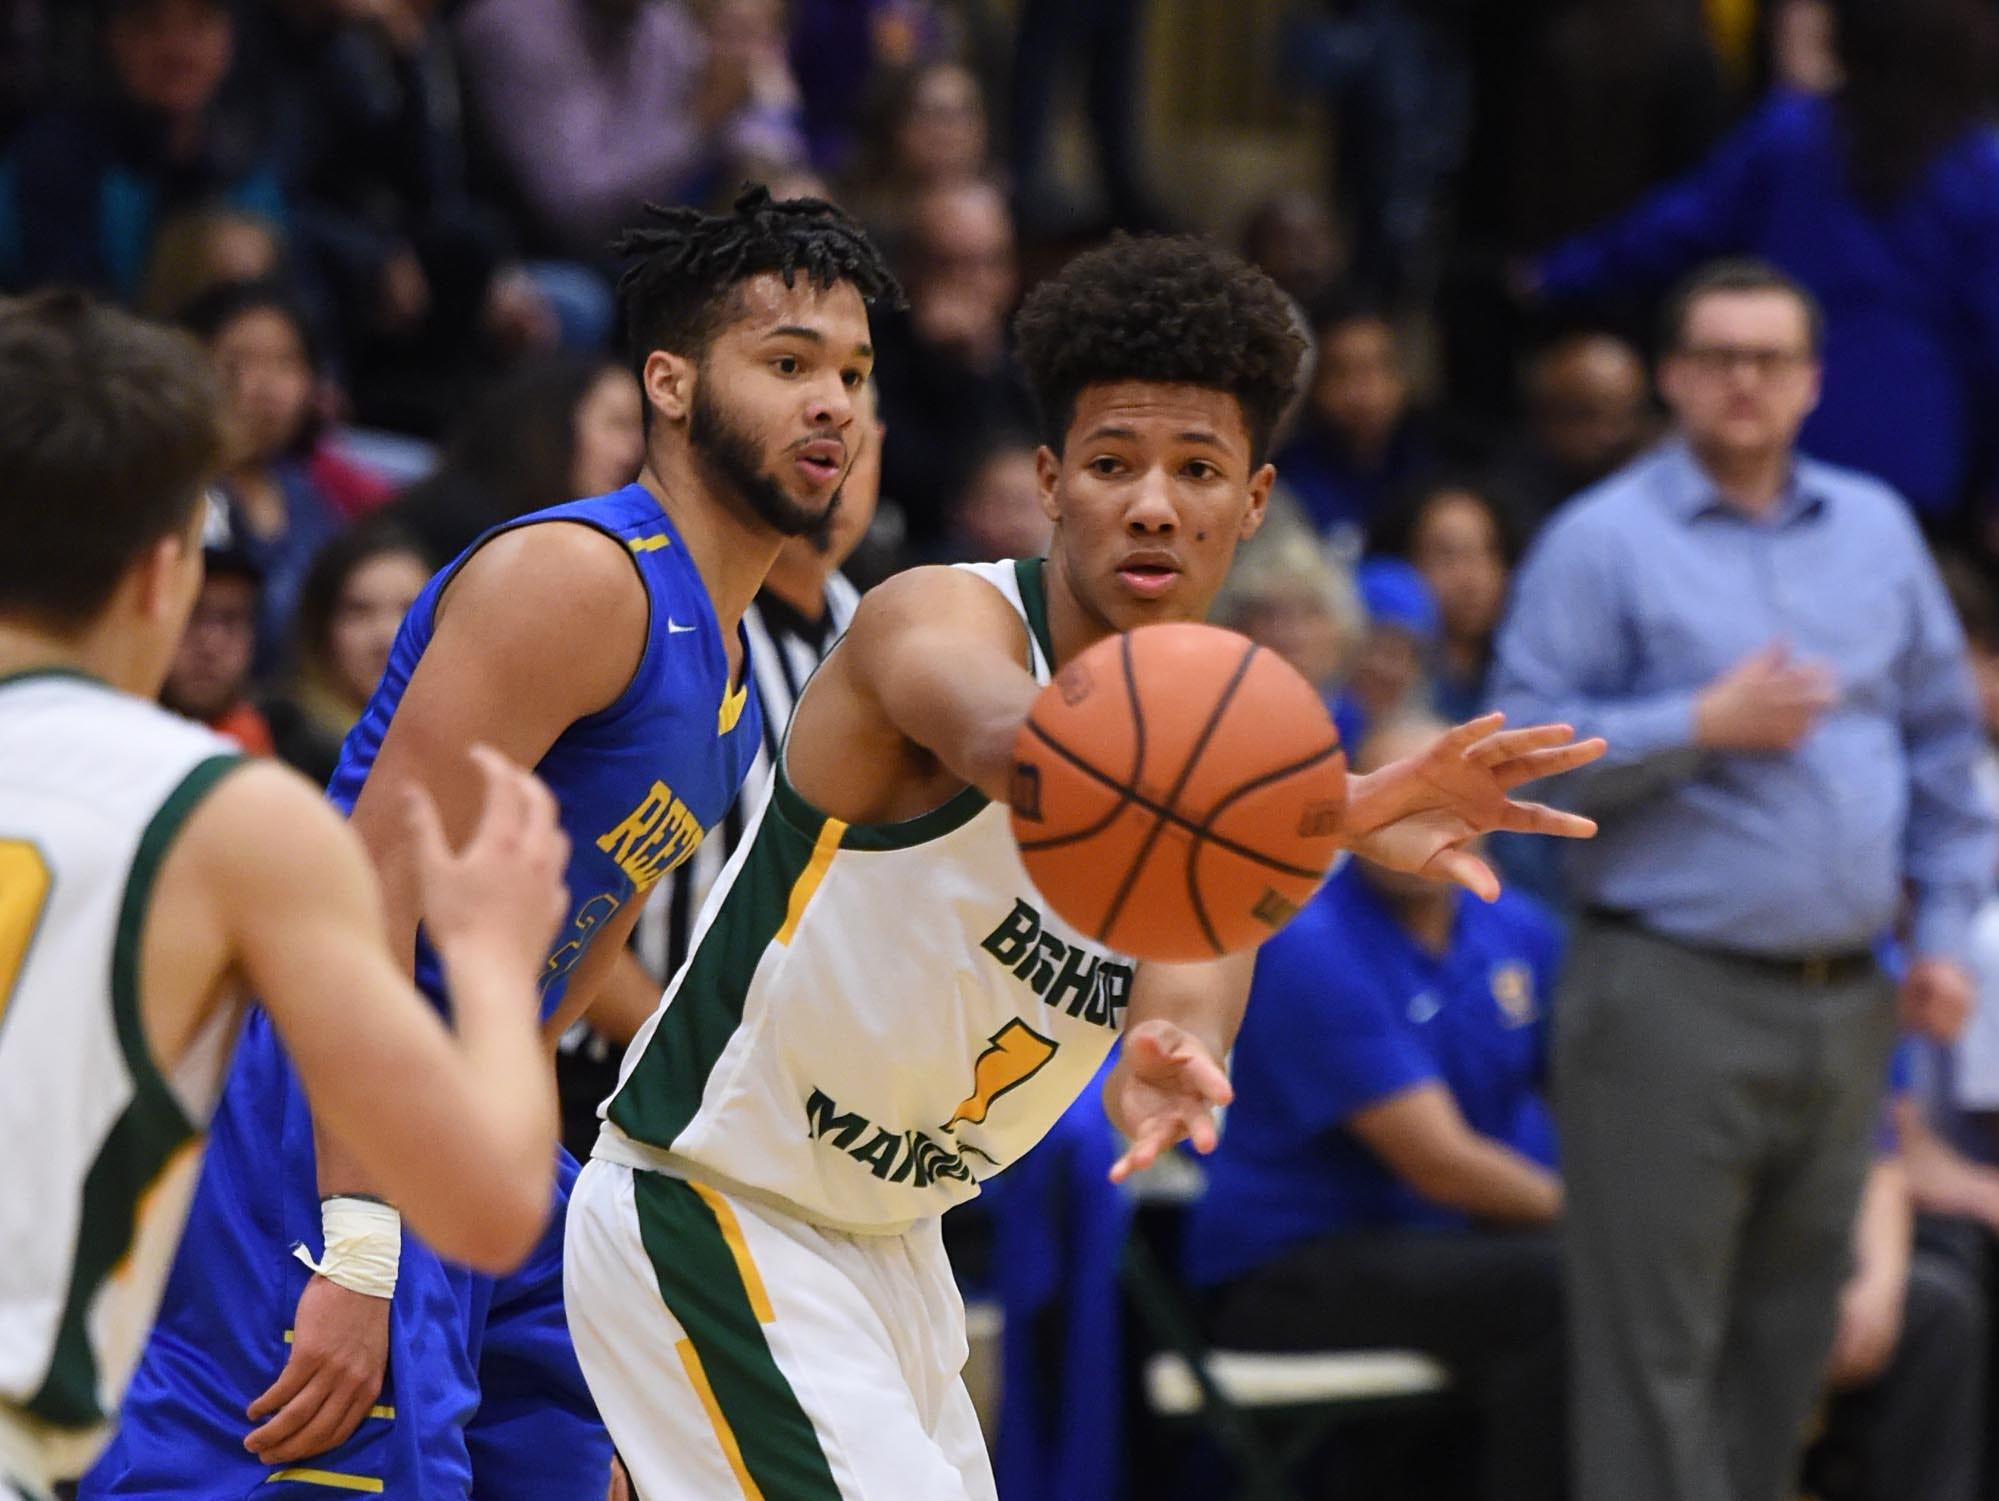 Action photos of the Reed at Bishop Manogue boys basketball game on Tuesday Jan. 8, 2019.